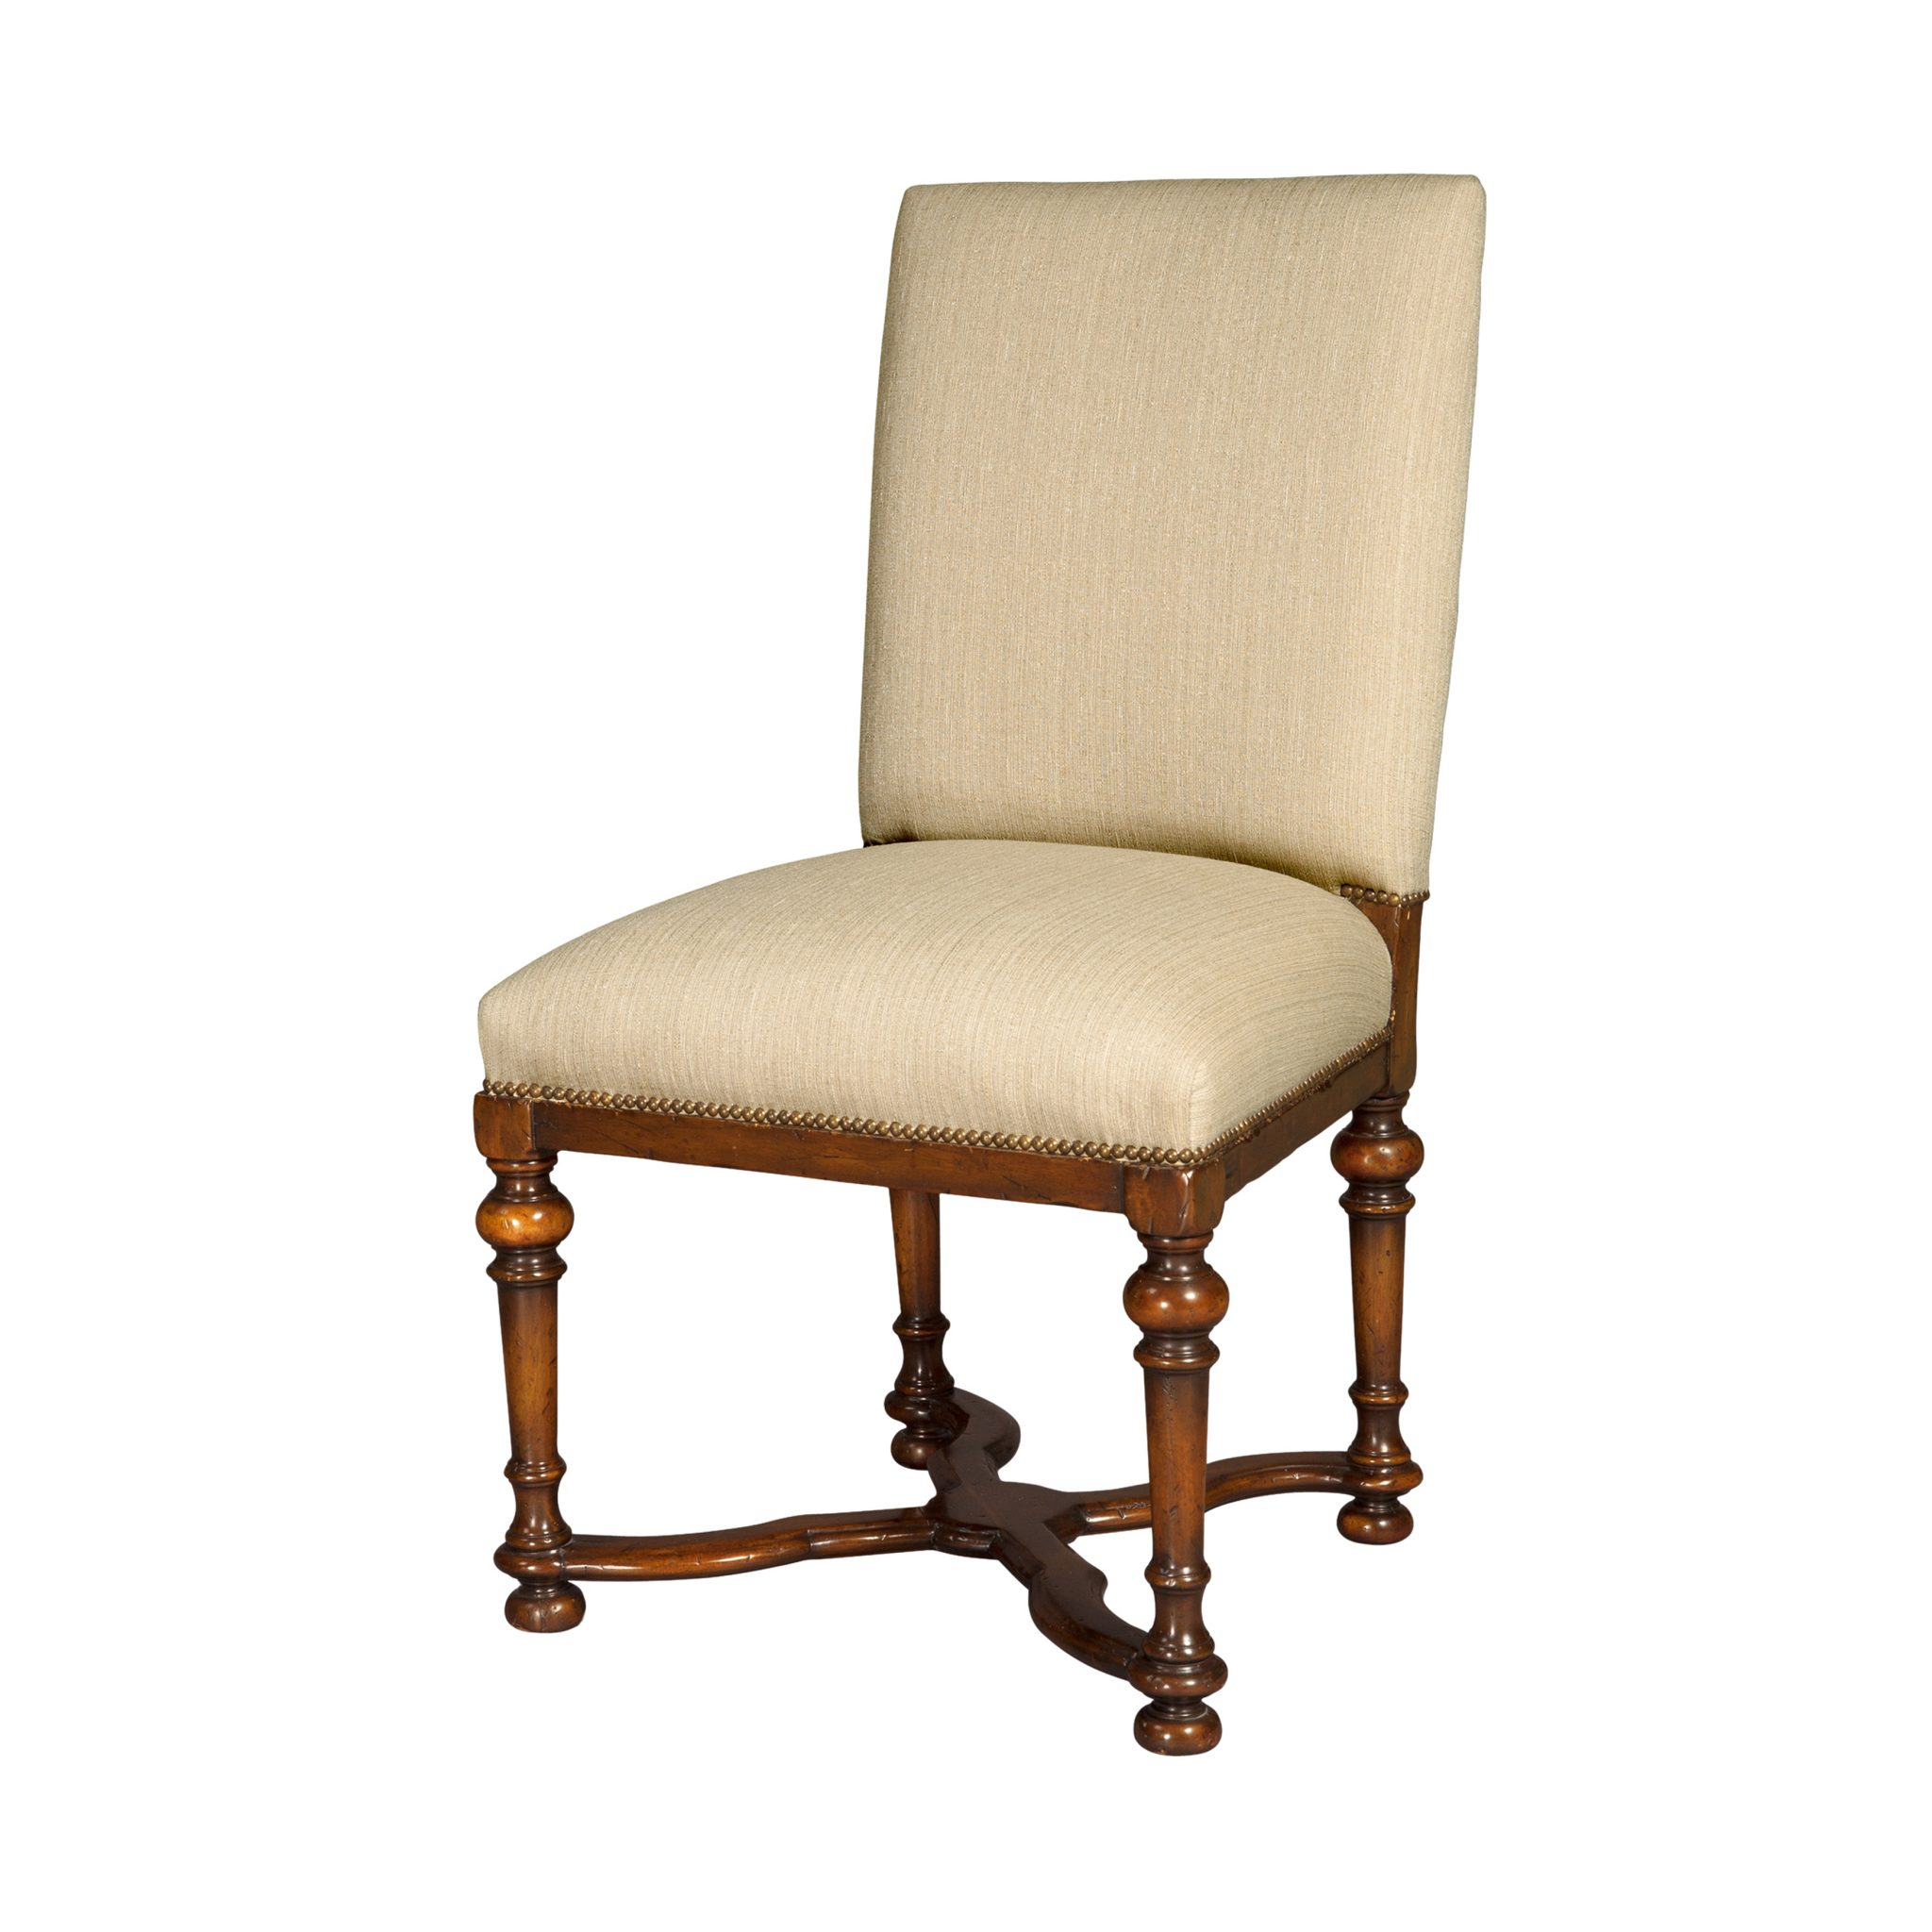 Reproduction William Mary Side Chair English Antiques Caledonian Inc Barrington Il